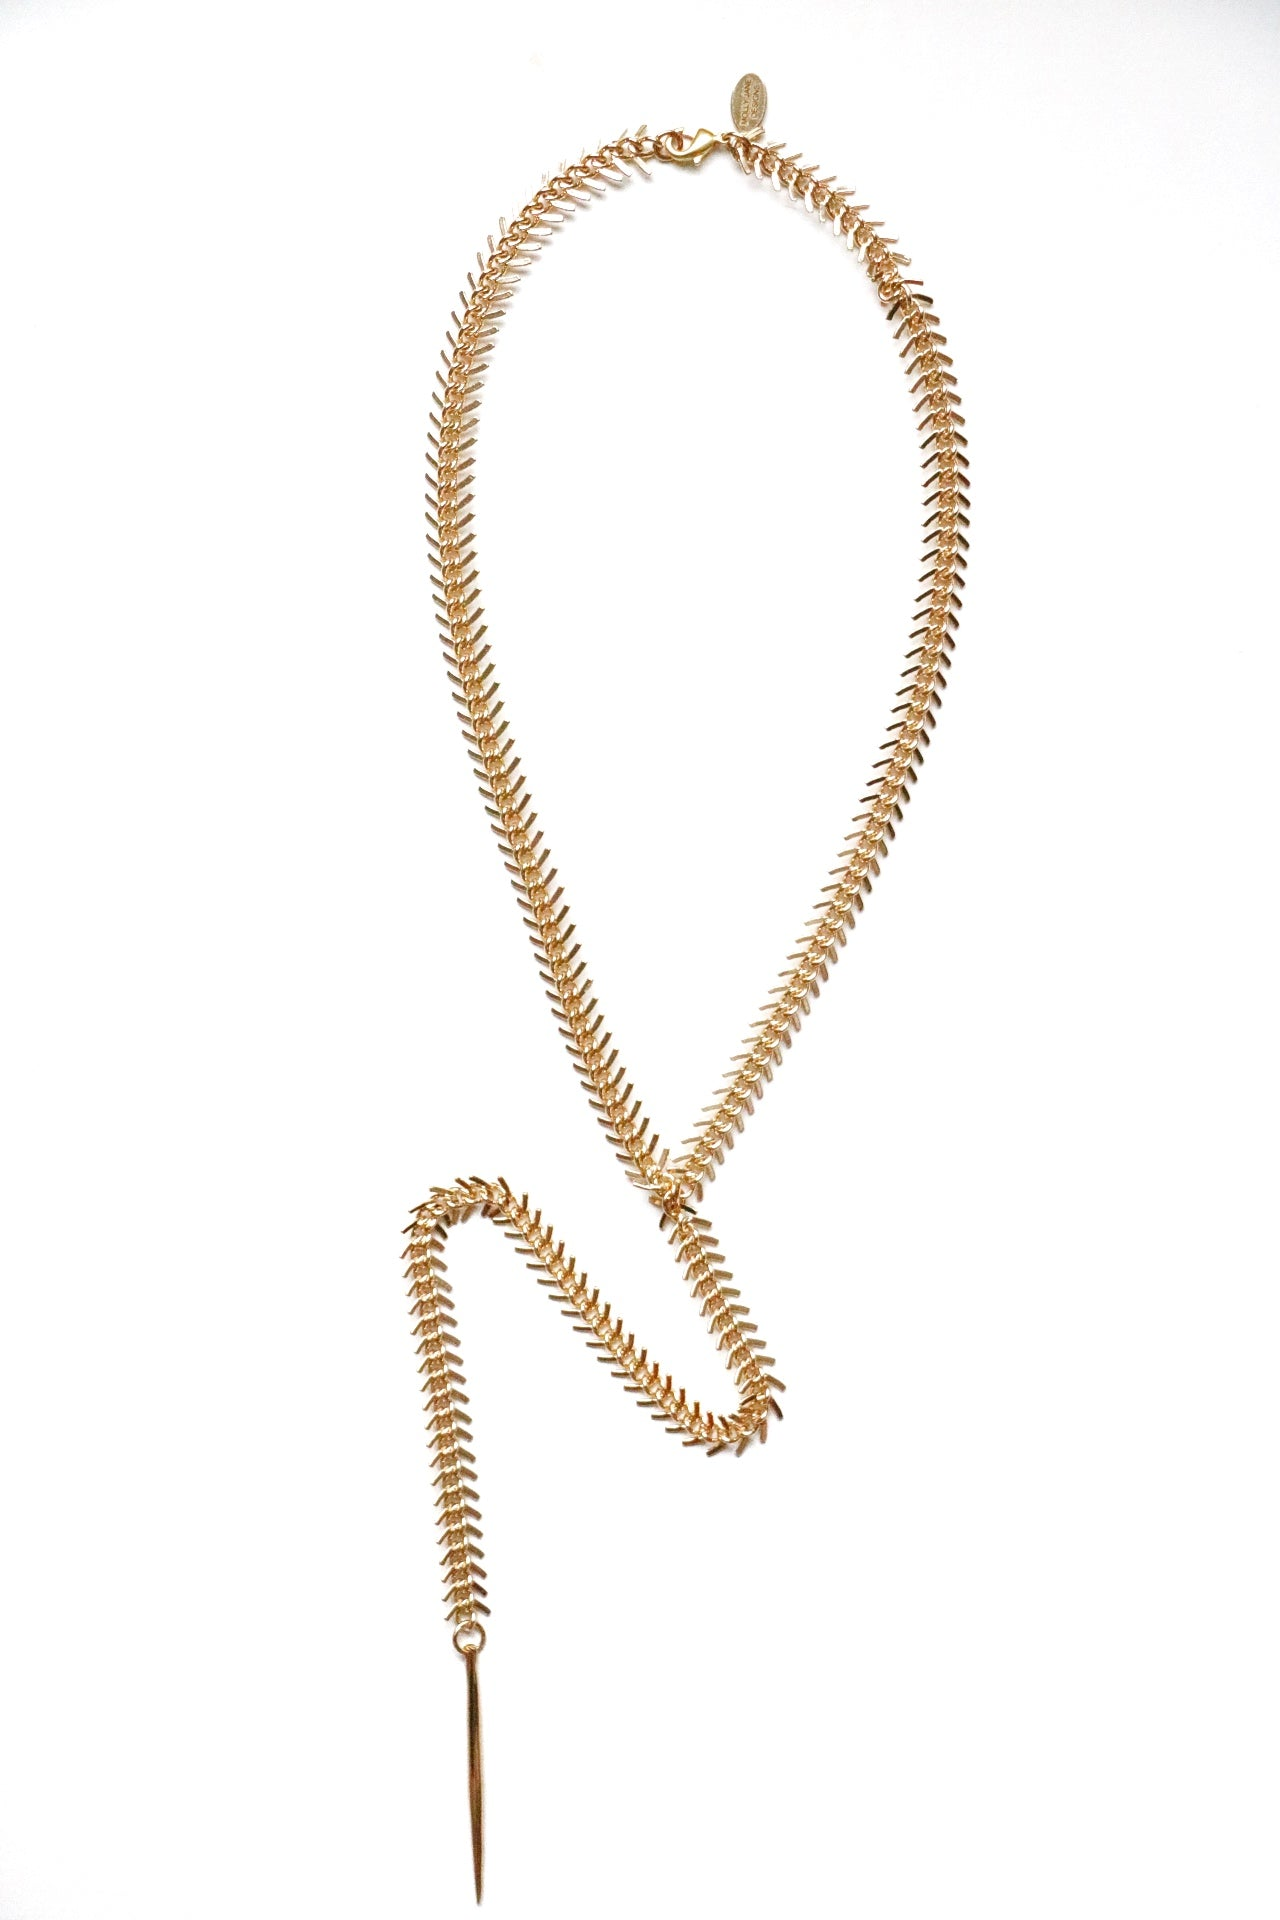 Gold Fishbone Necklace, Fishbone Chain, holiday gift guide, women's accessories,